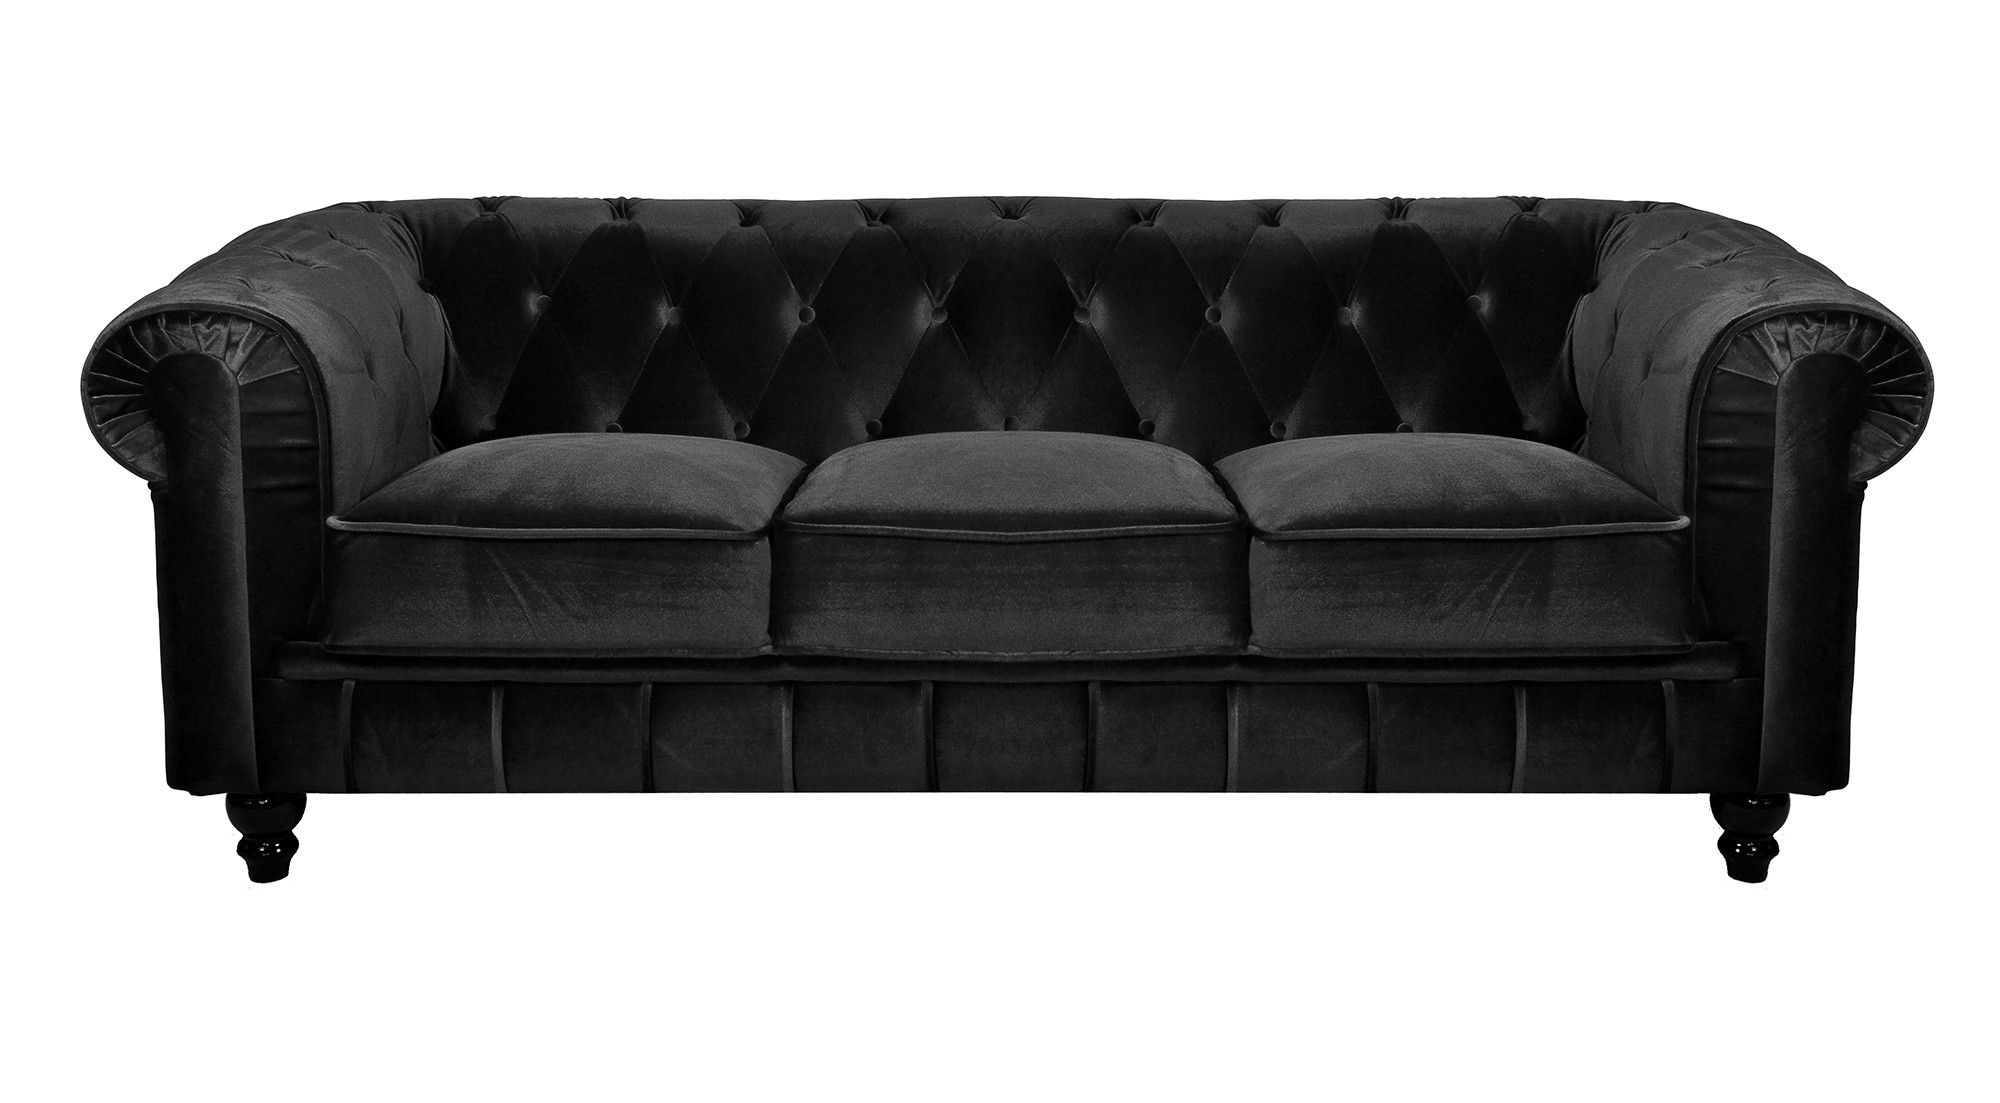 Canap chesterfield convertible canape chesterfield for Achat canape convertible